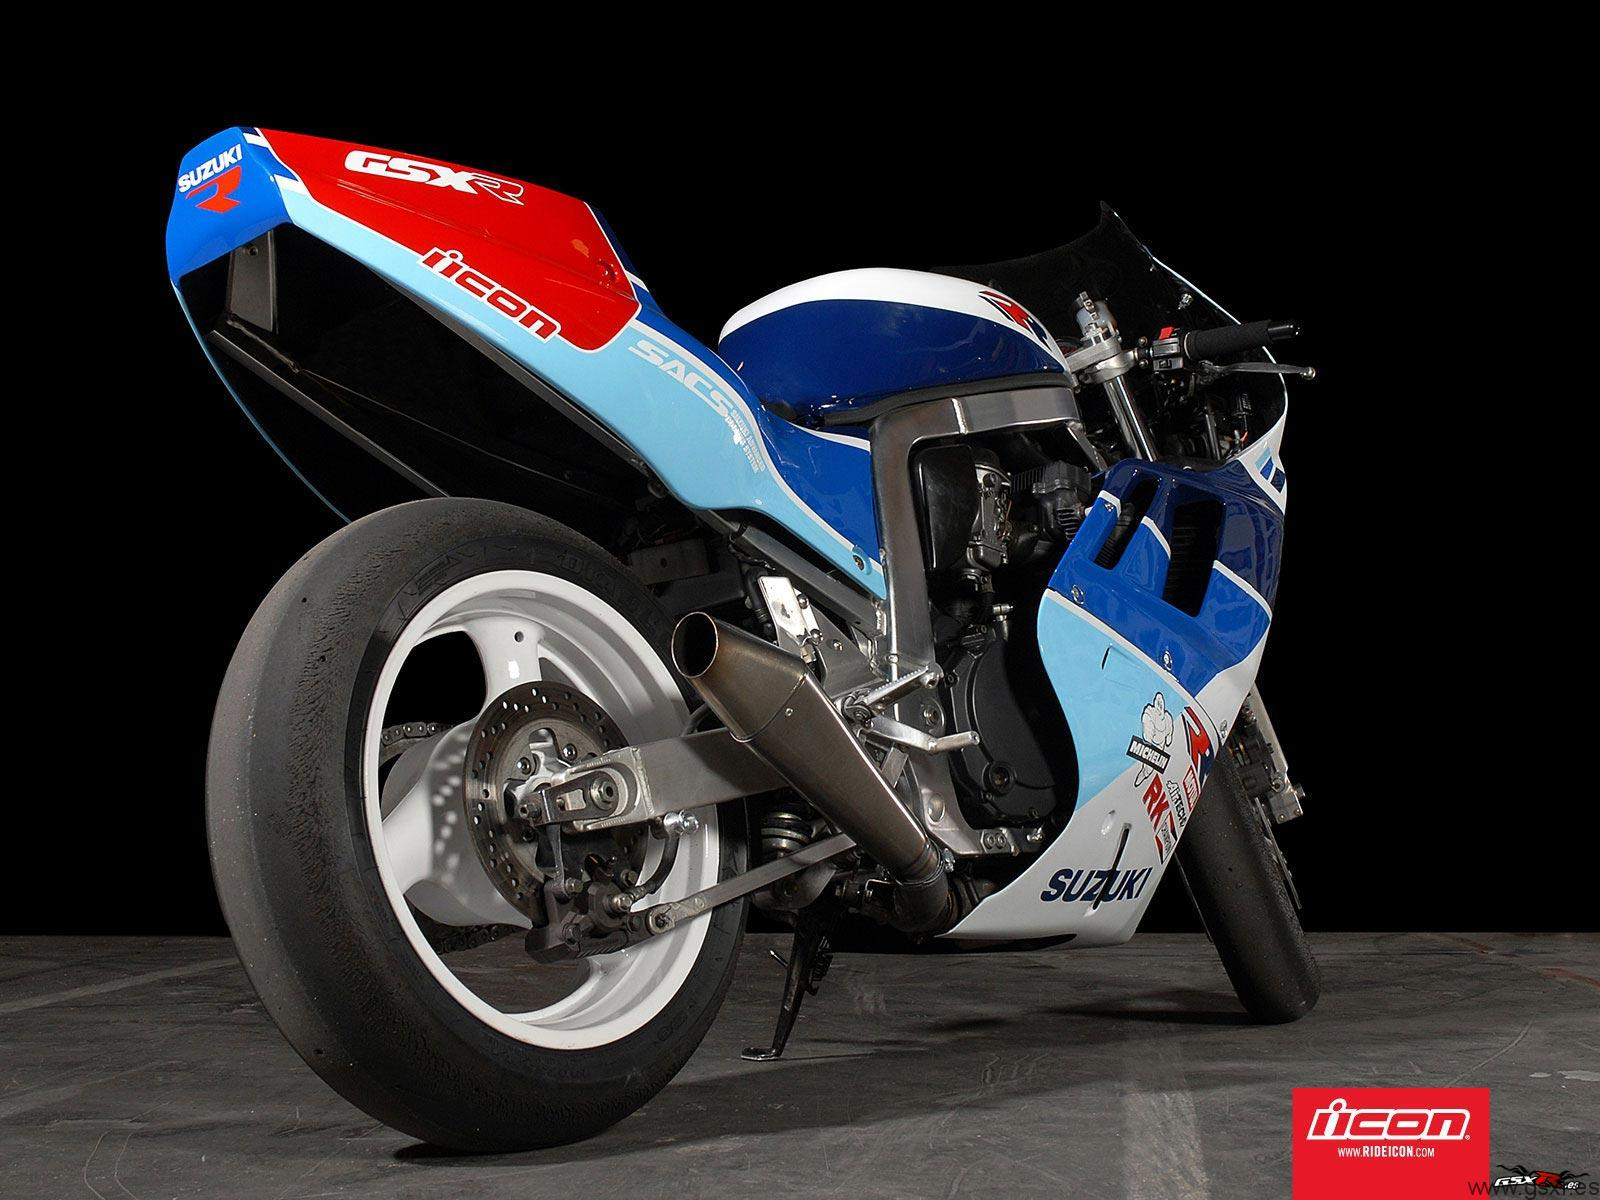 suzuki gsx-r 750 1990 hyper sports wallpaper